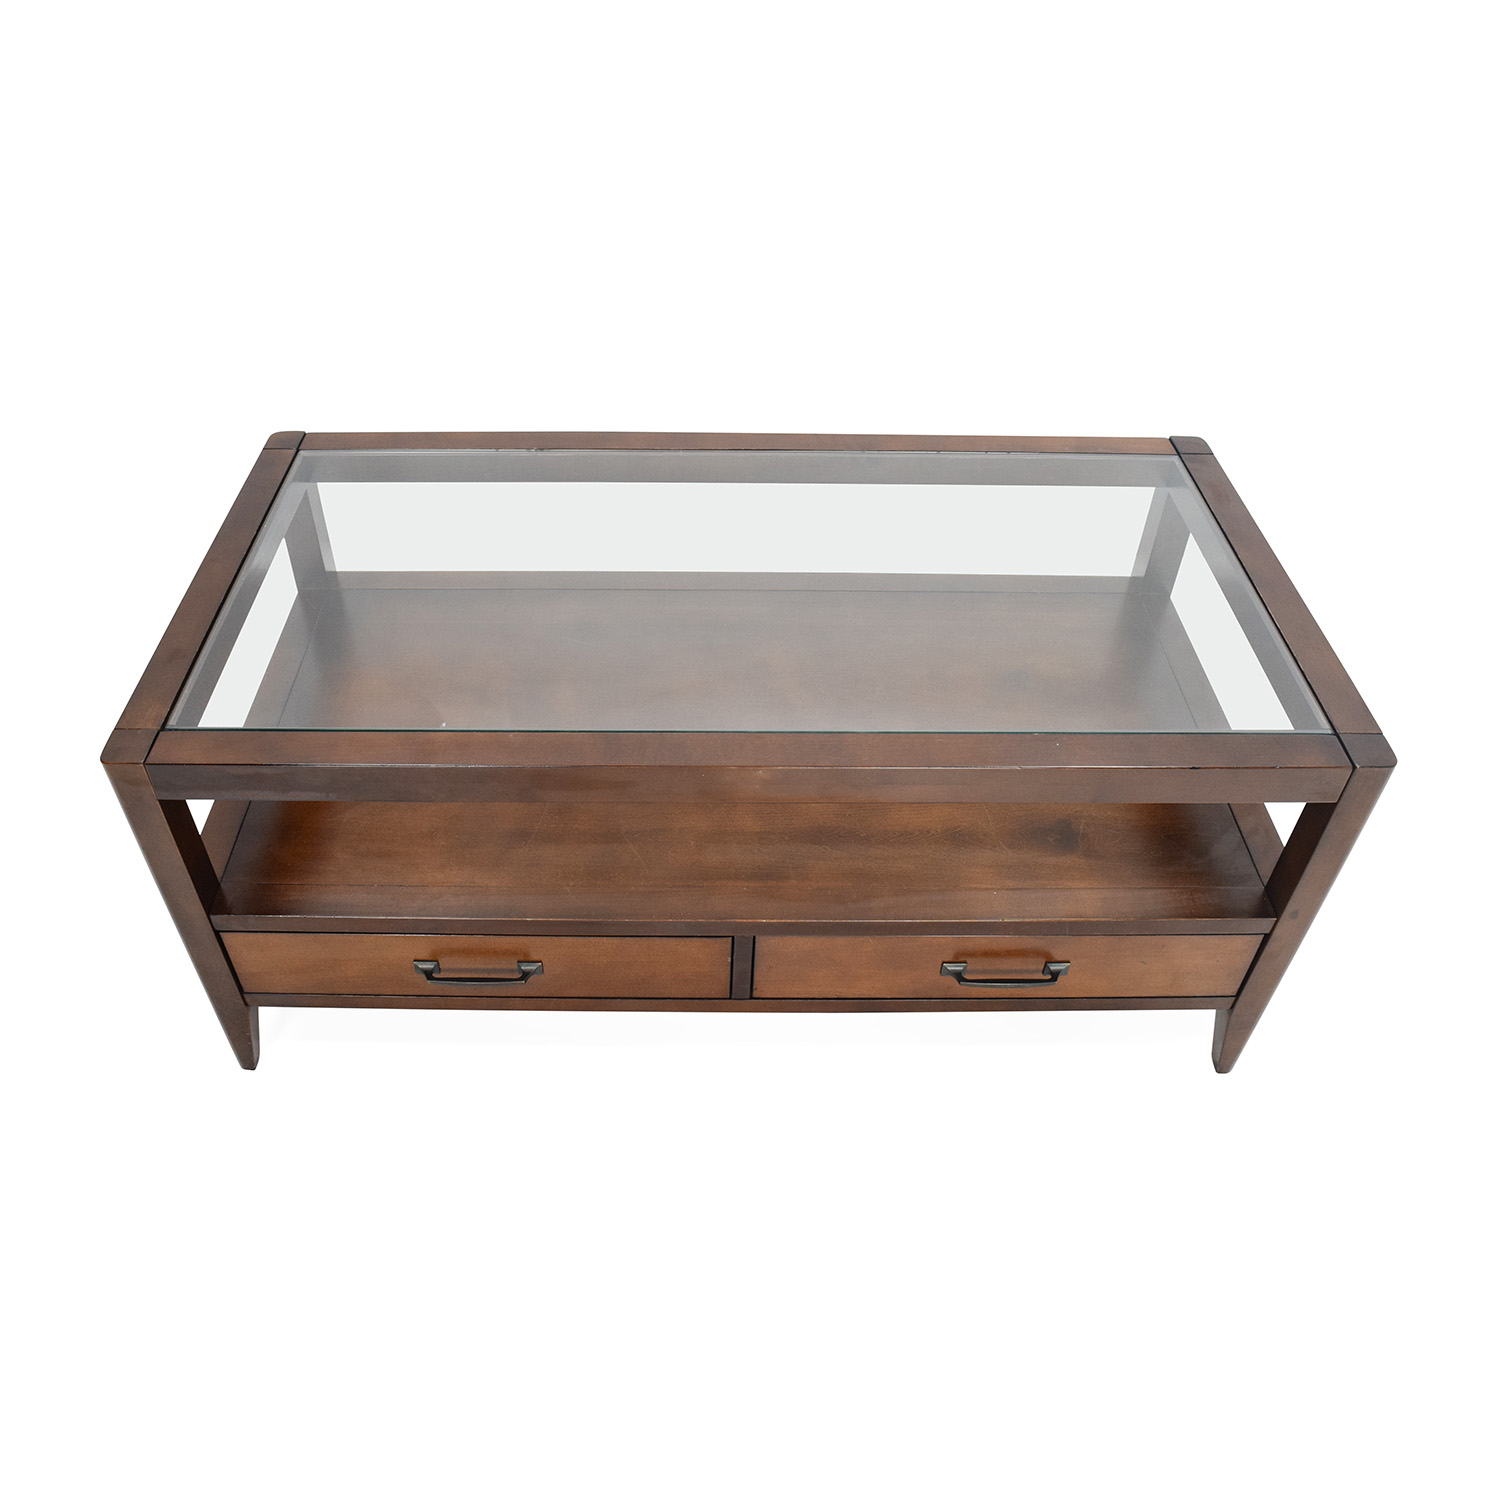 Unknown Brand Glass Top Coffee Table For Sale